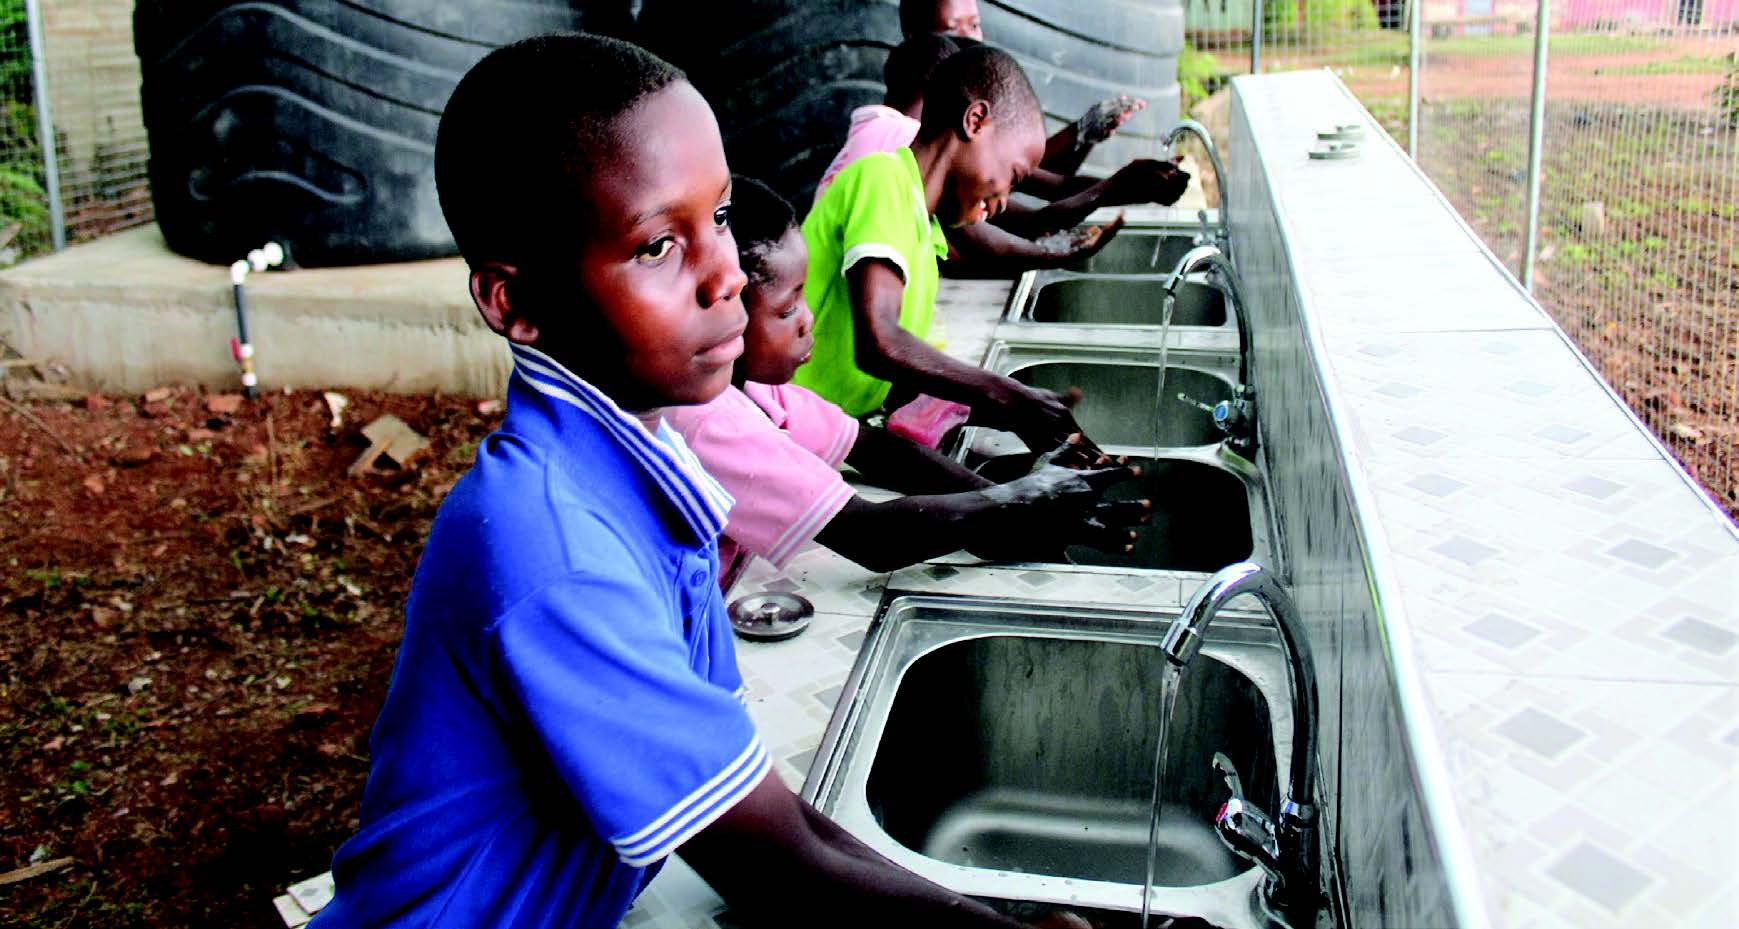 Supporting Compassion Australia's Sanitation Projects in Ghana